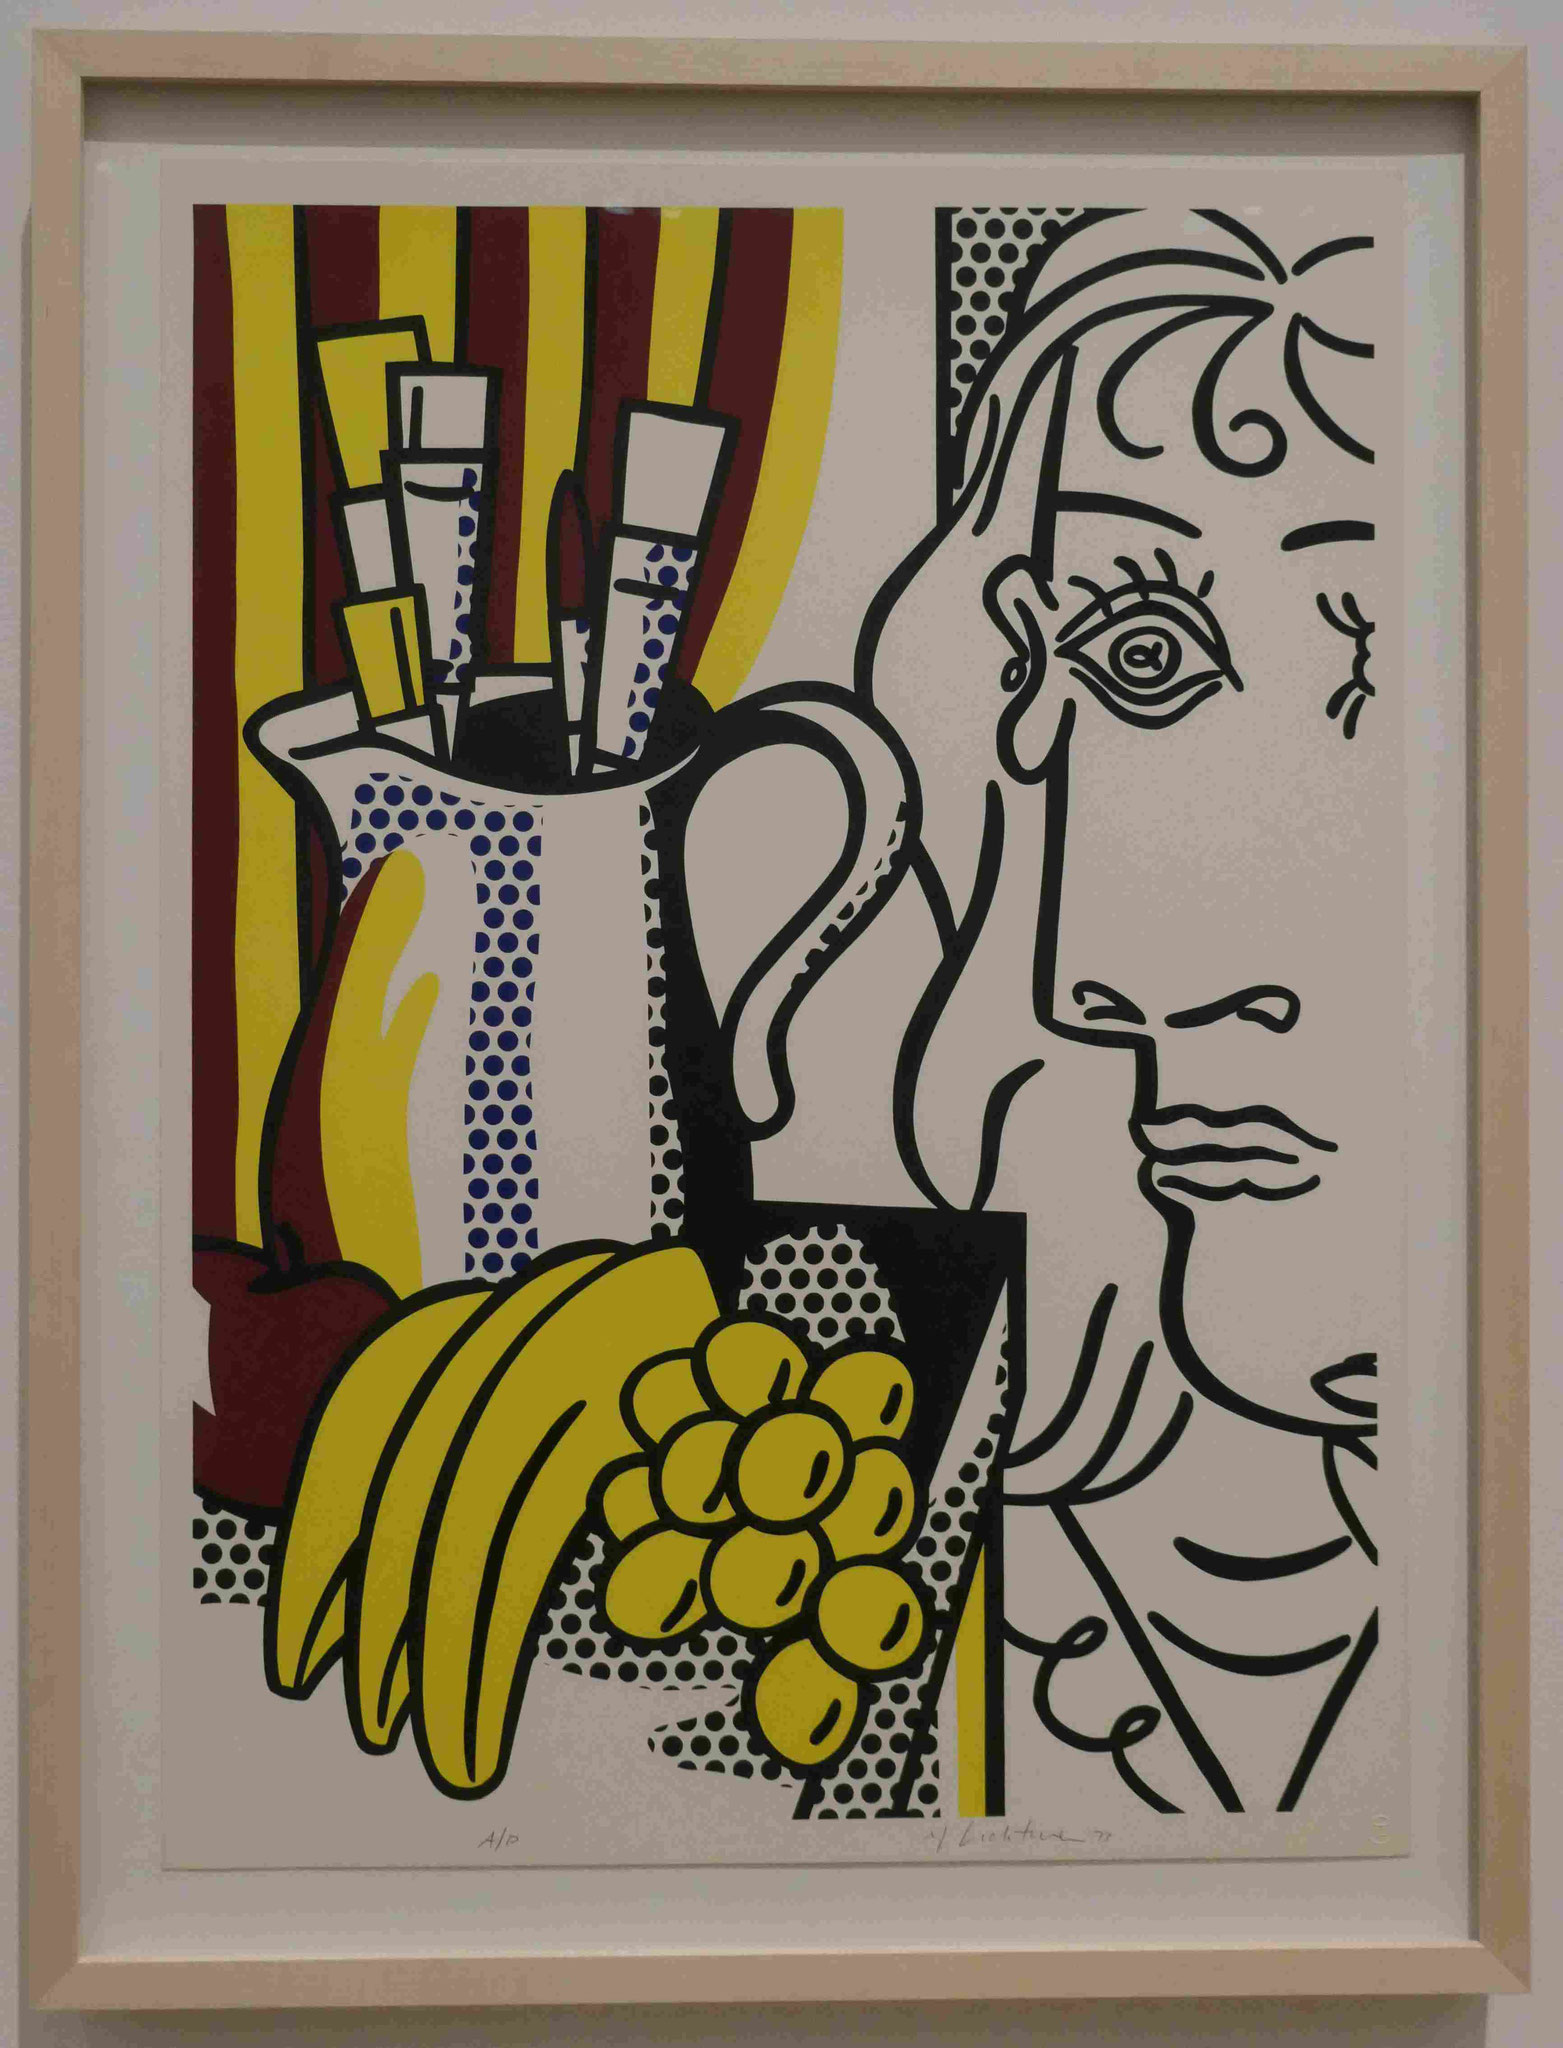 Roy Lichtenstein, Still Life with Picasso, Siebdruck, 1973, Nationalgalerie Berlin